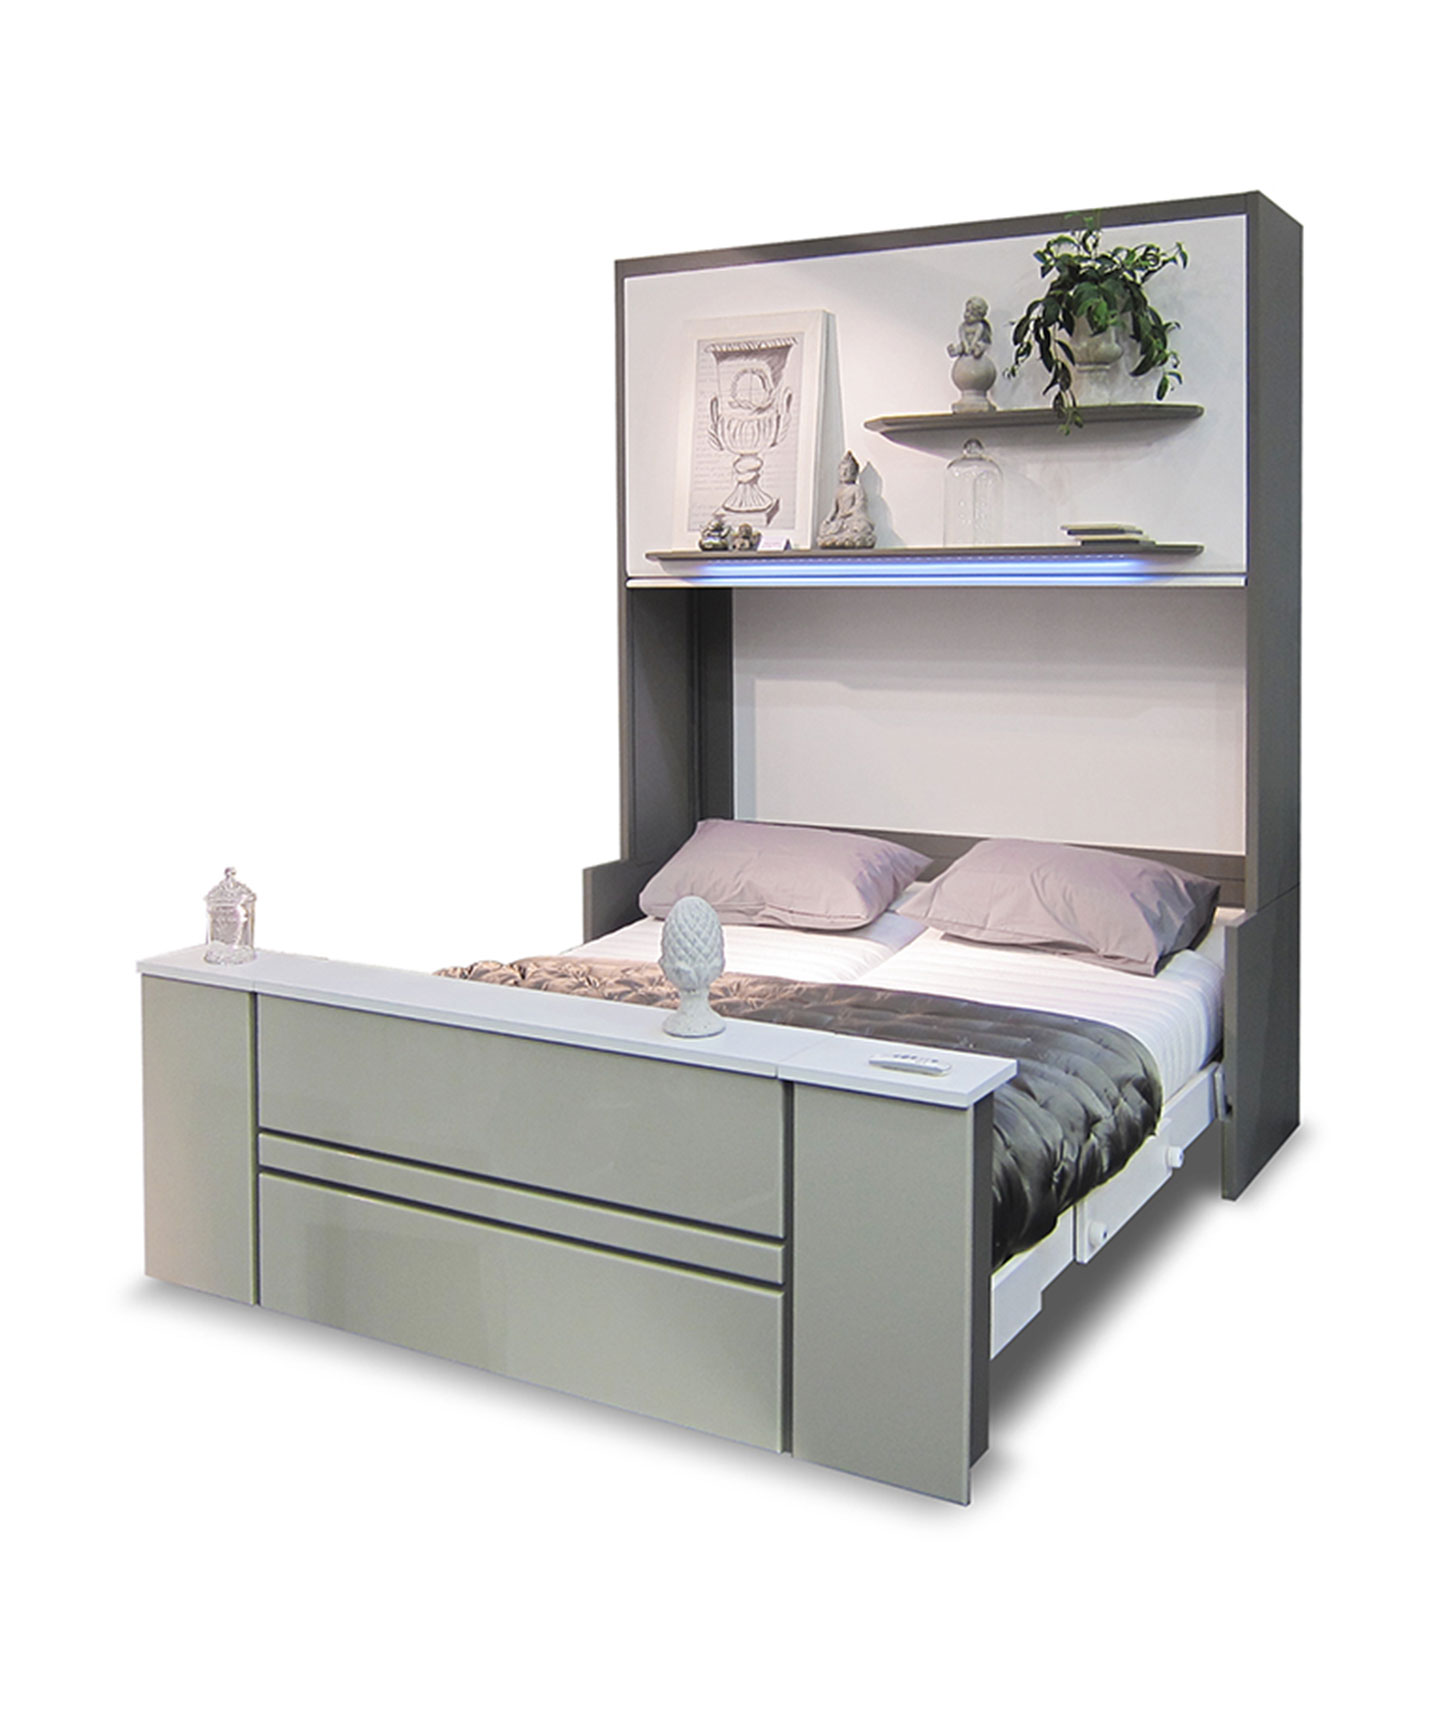 armoire lit escamotable electrique jg14 jornalagora. Black Bedroom Furniture Sets. Home Design Ideas